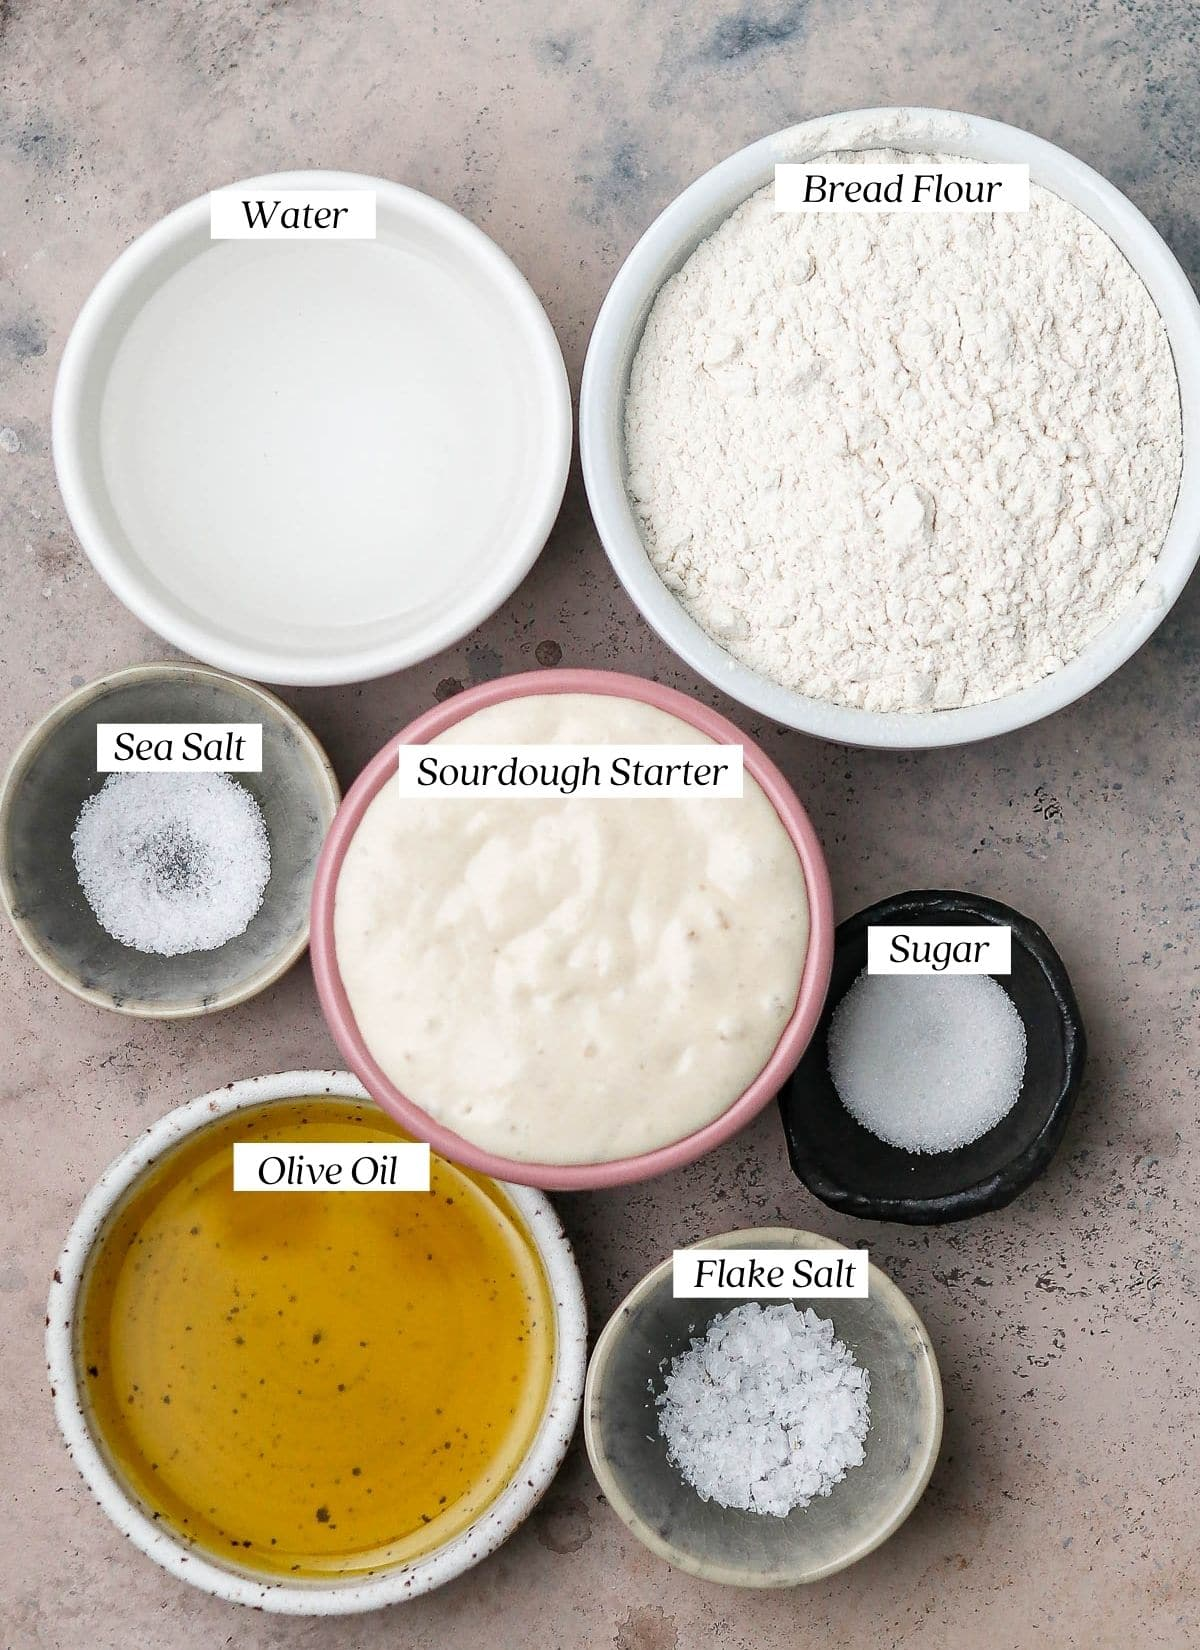 ingredients with labels.